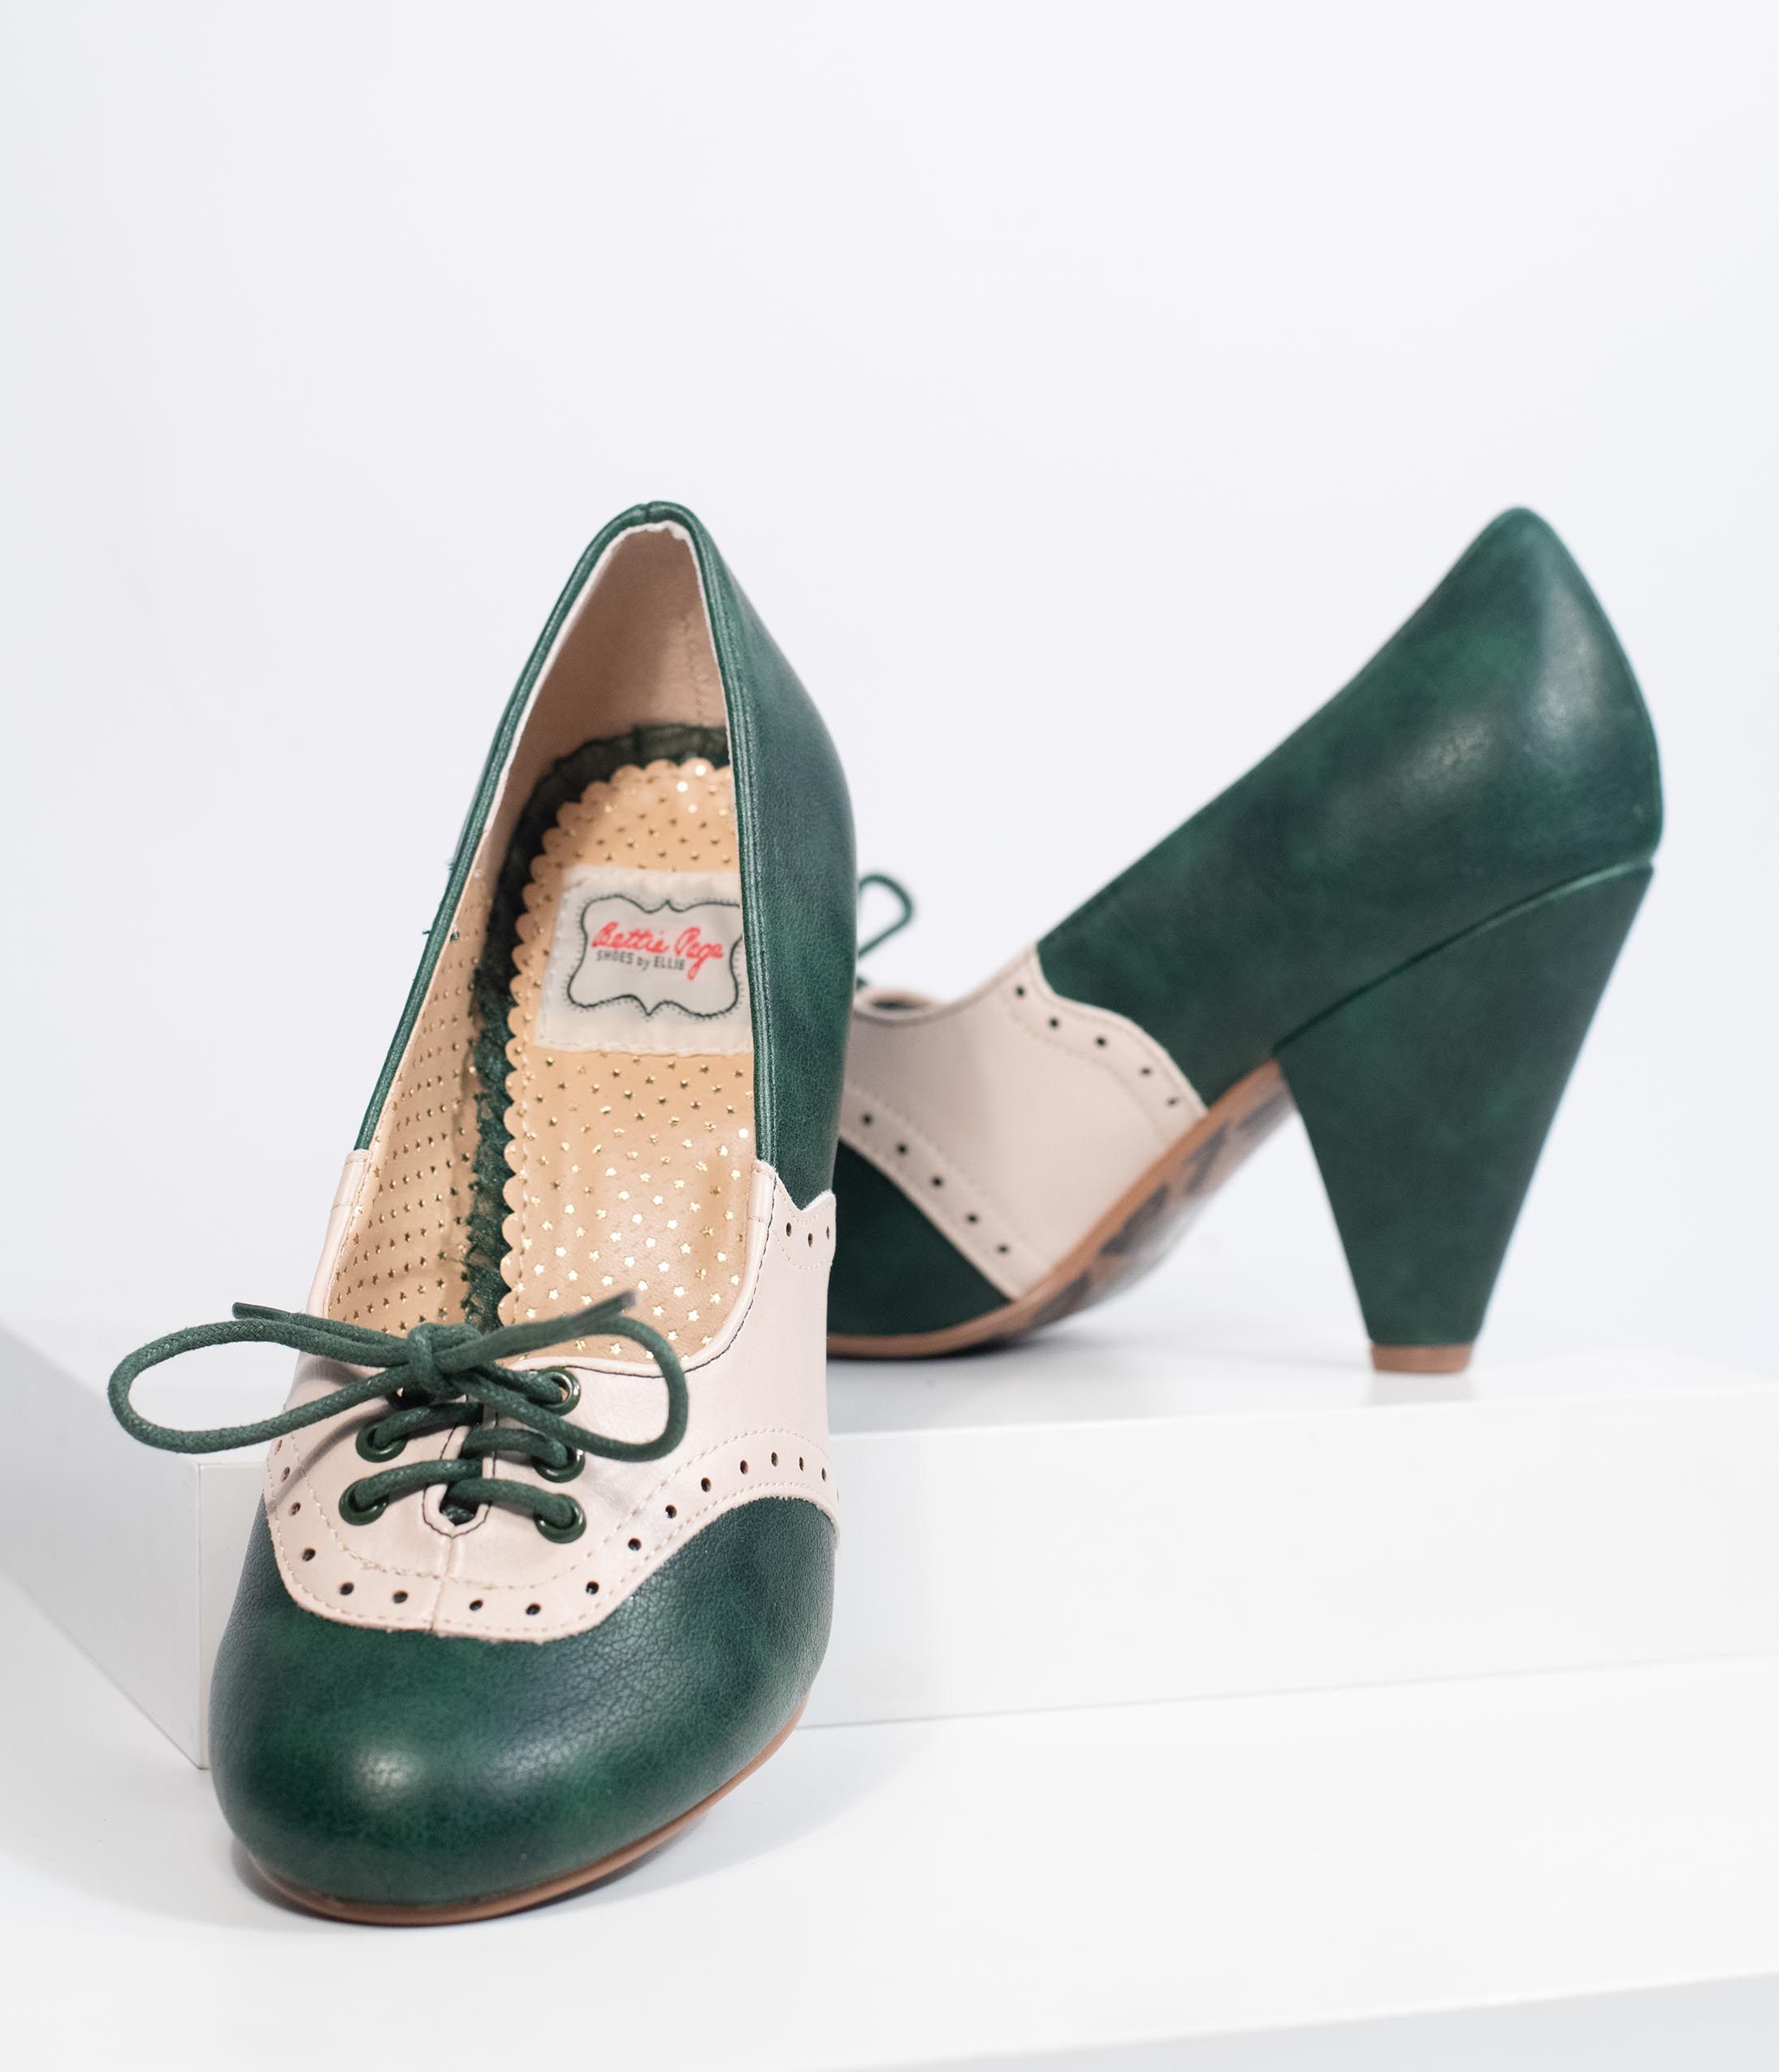 Rockabilly Shoes- Heels, Pumps, Boots, Flats Bettie Page Green  Ivory Leatherette Carole Oxford Saddle Heels $74.00 AT vintagedancer.com